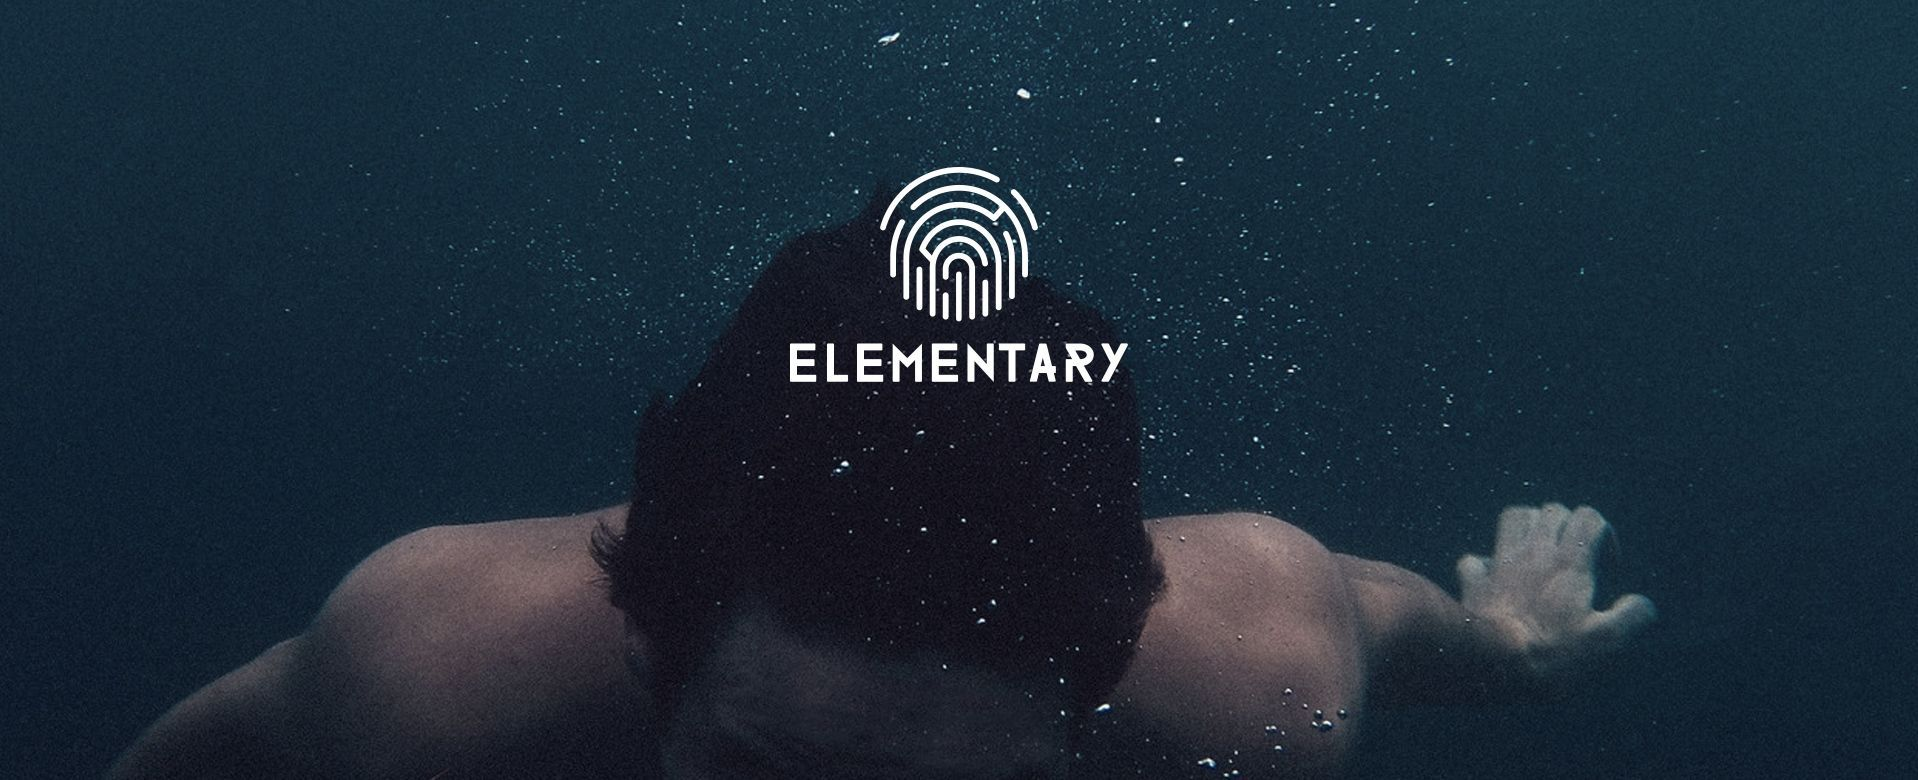 Promo-site and schedule system for Elementary